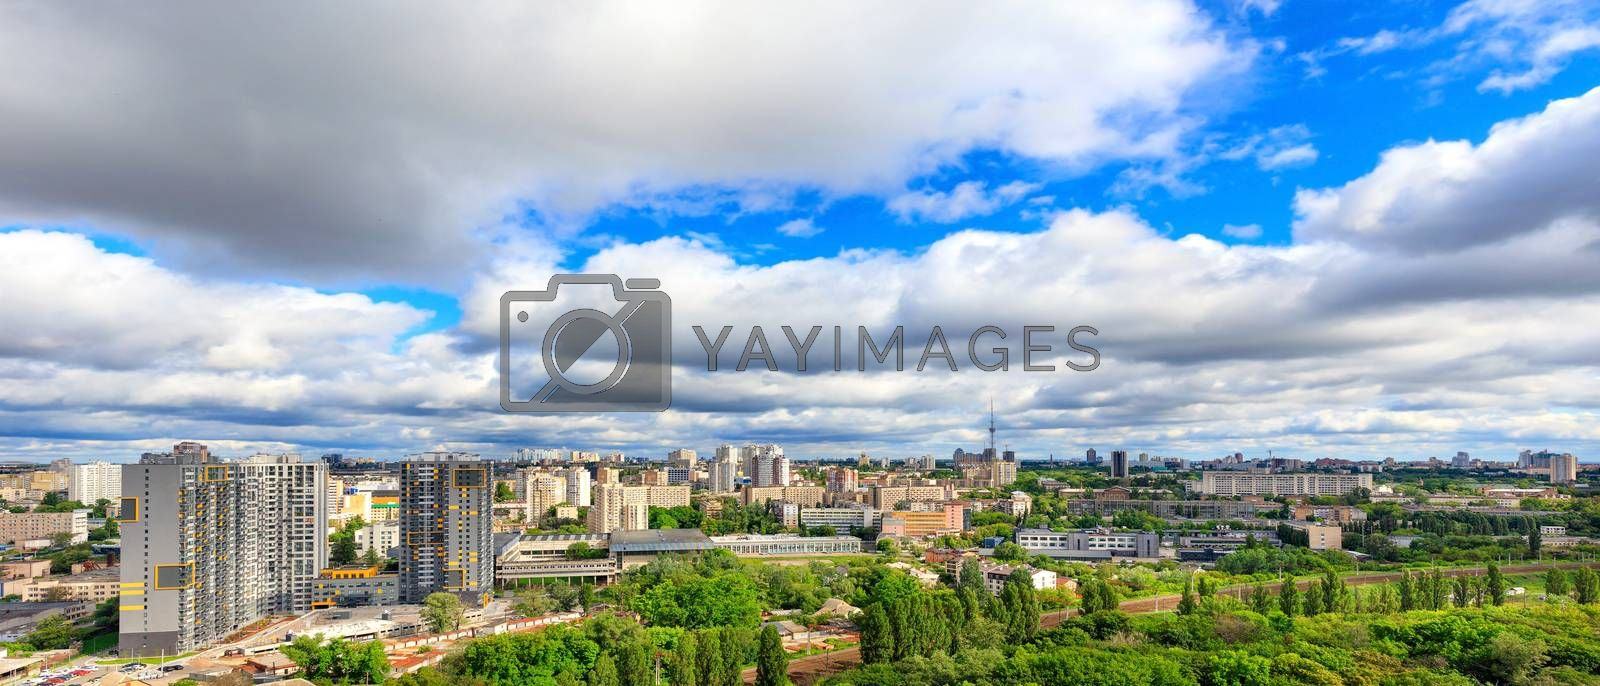 Large low clouds fill the sky over a sunny city with tall apartment buildings and green parks in a panorama with cityscape and horizon.